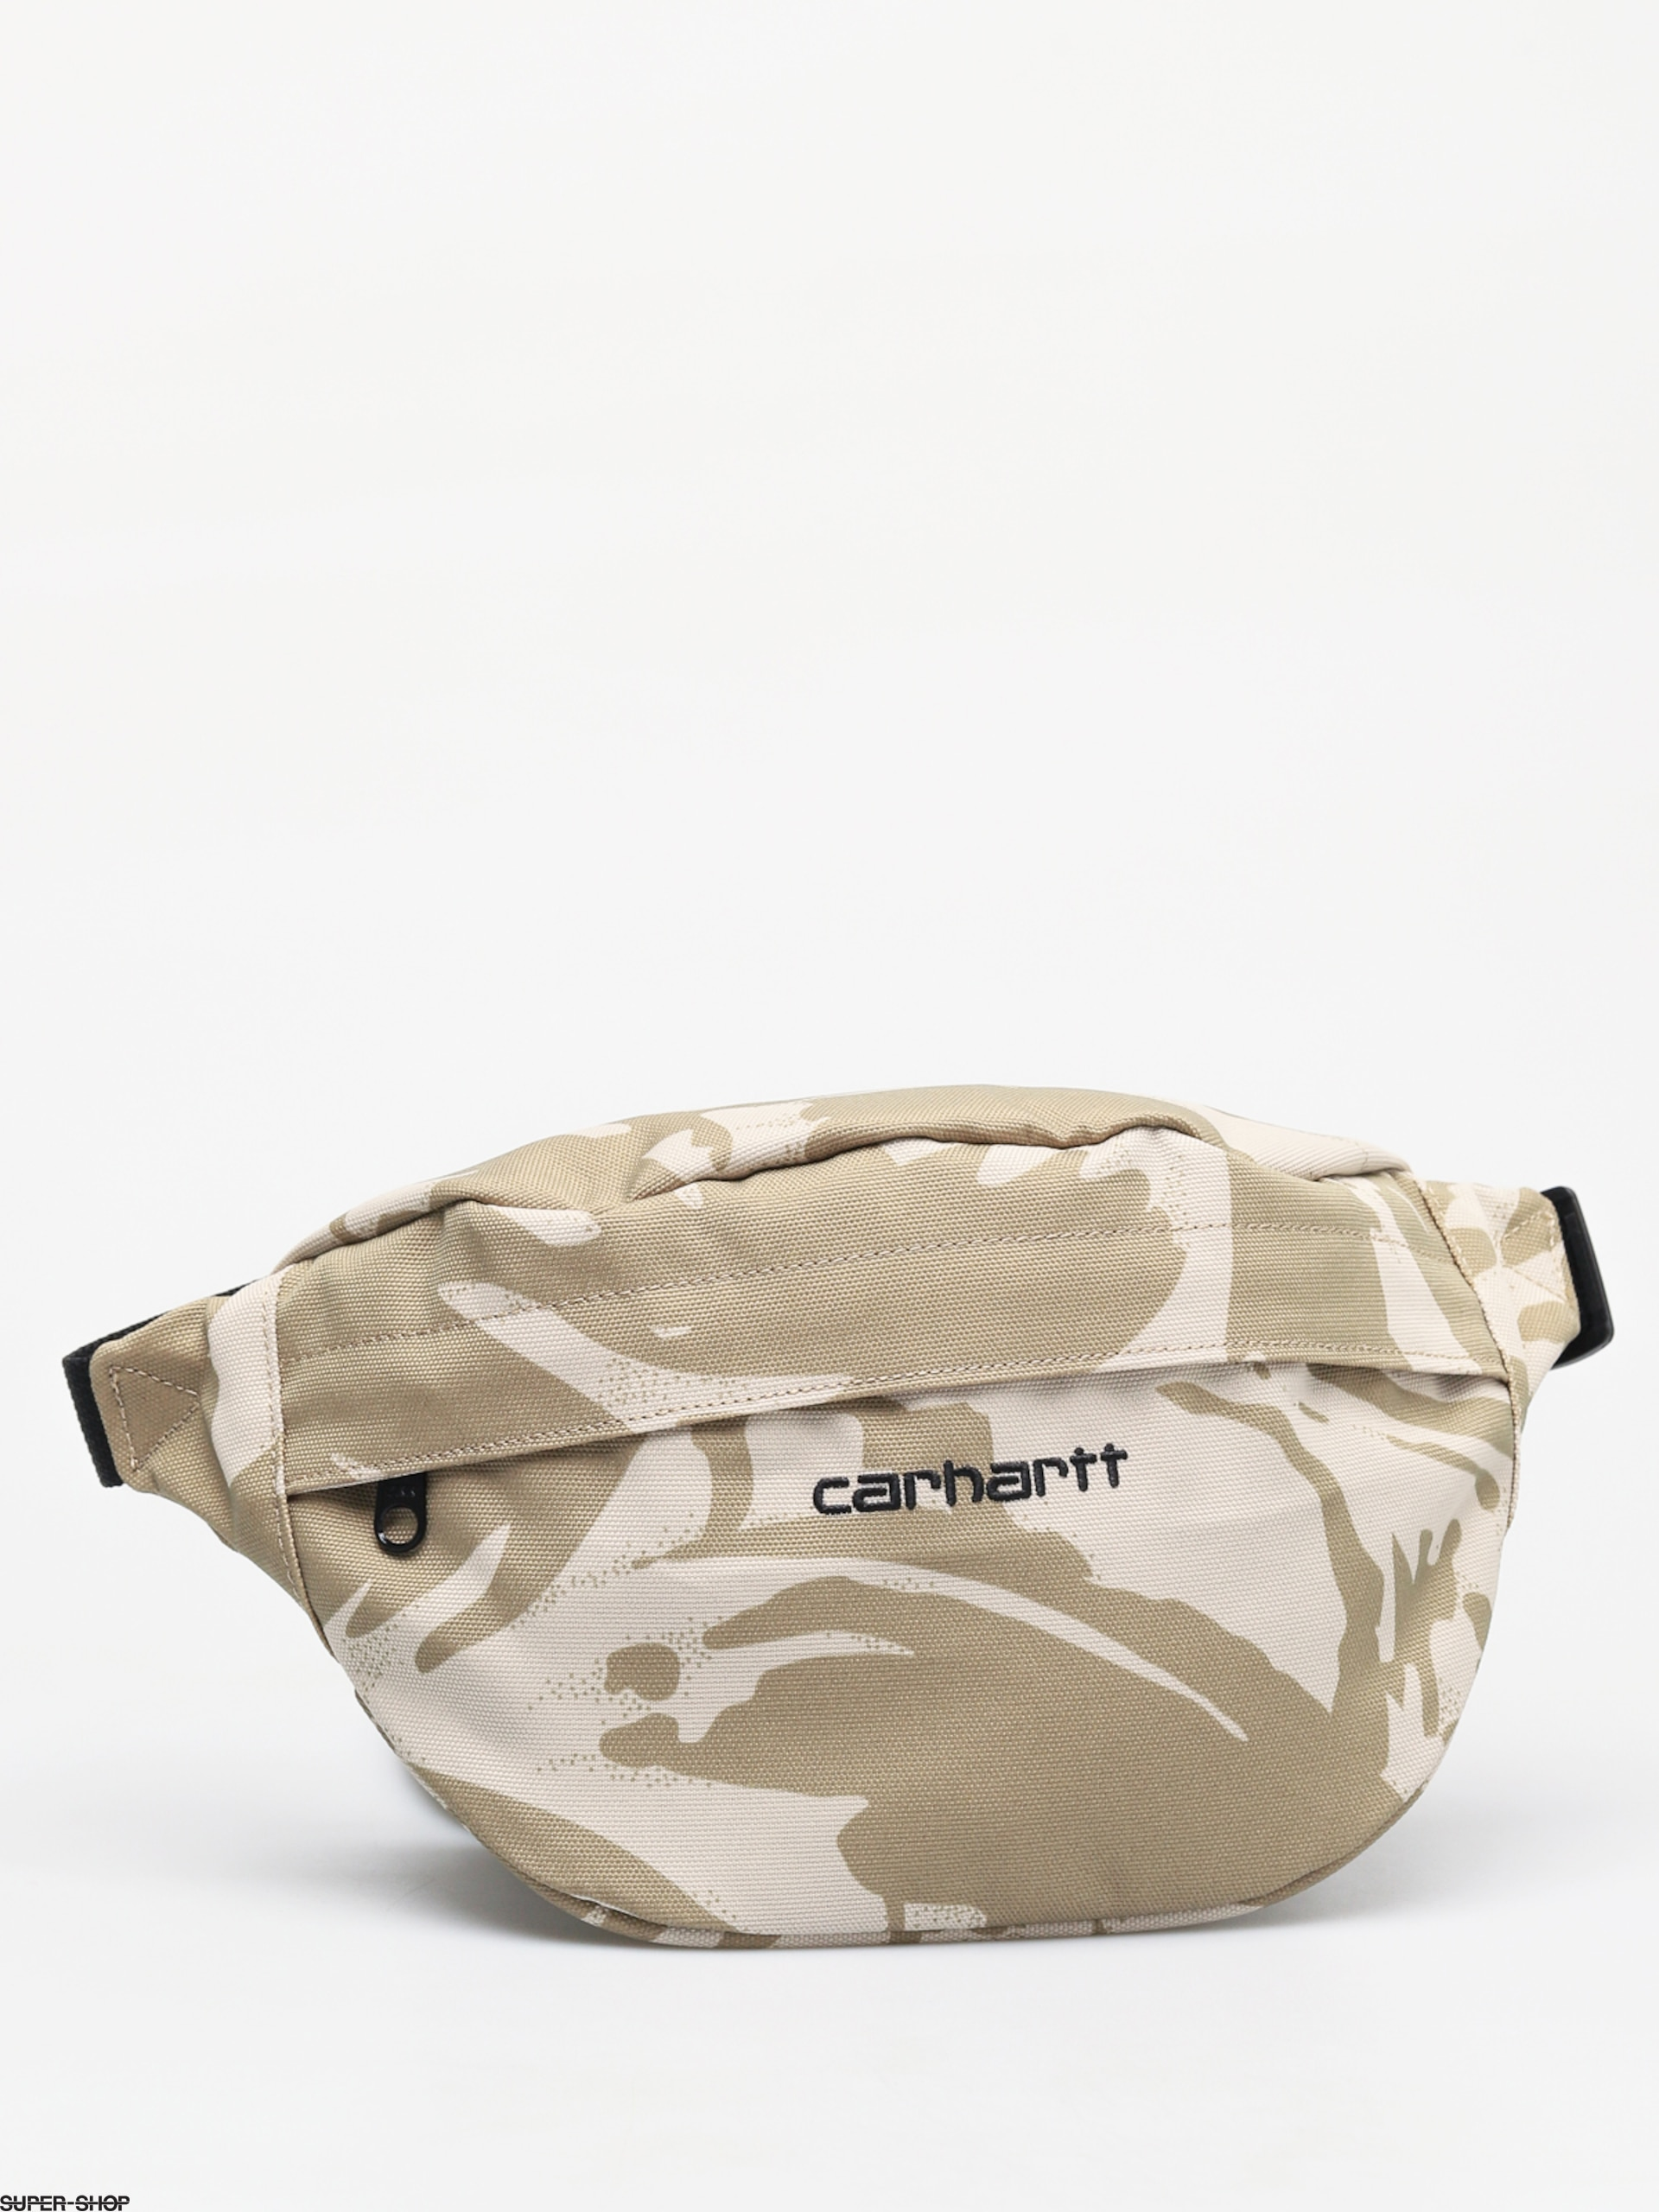 31df182059 1025051-w1920-carhartt-wip-payton-hip-bag-camo-brush-sandshell-black.jpg